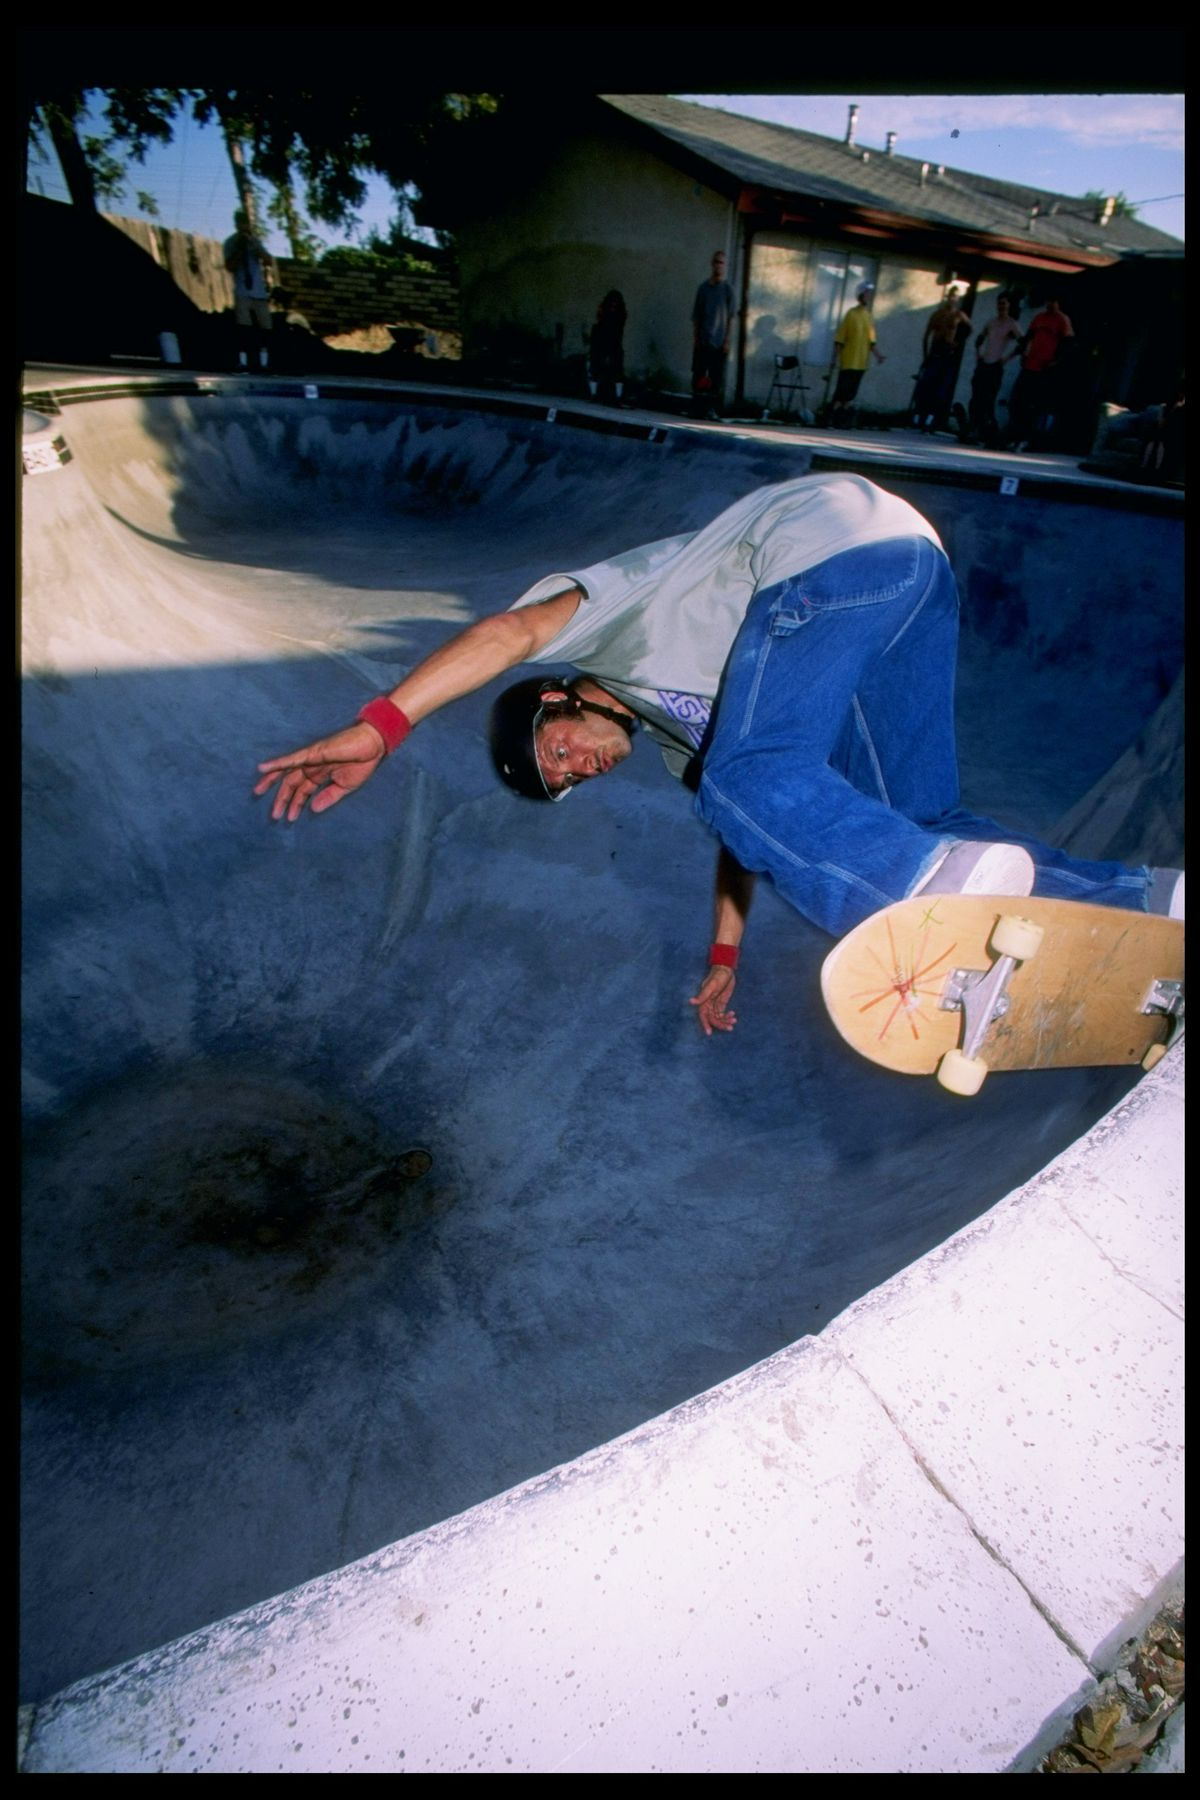 A grainy archival image of Tony Alva, dressed in blue jeans and an oversized gray t-shirt, skateboarding in a drained pool.